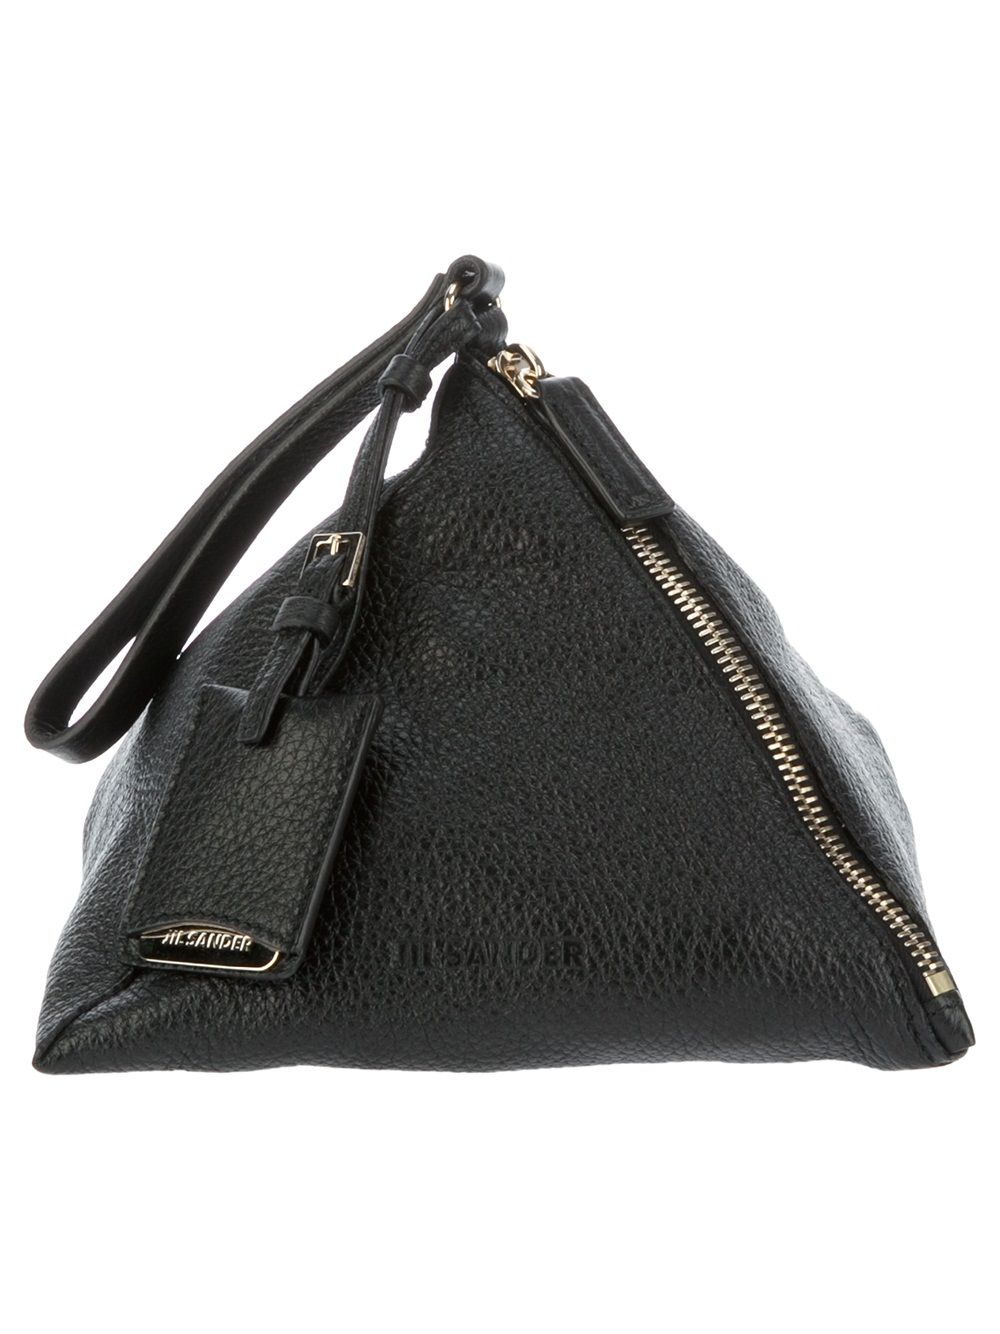 pyramid clutch bag - Black Jil Sander